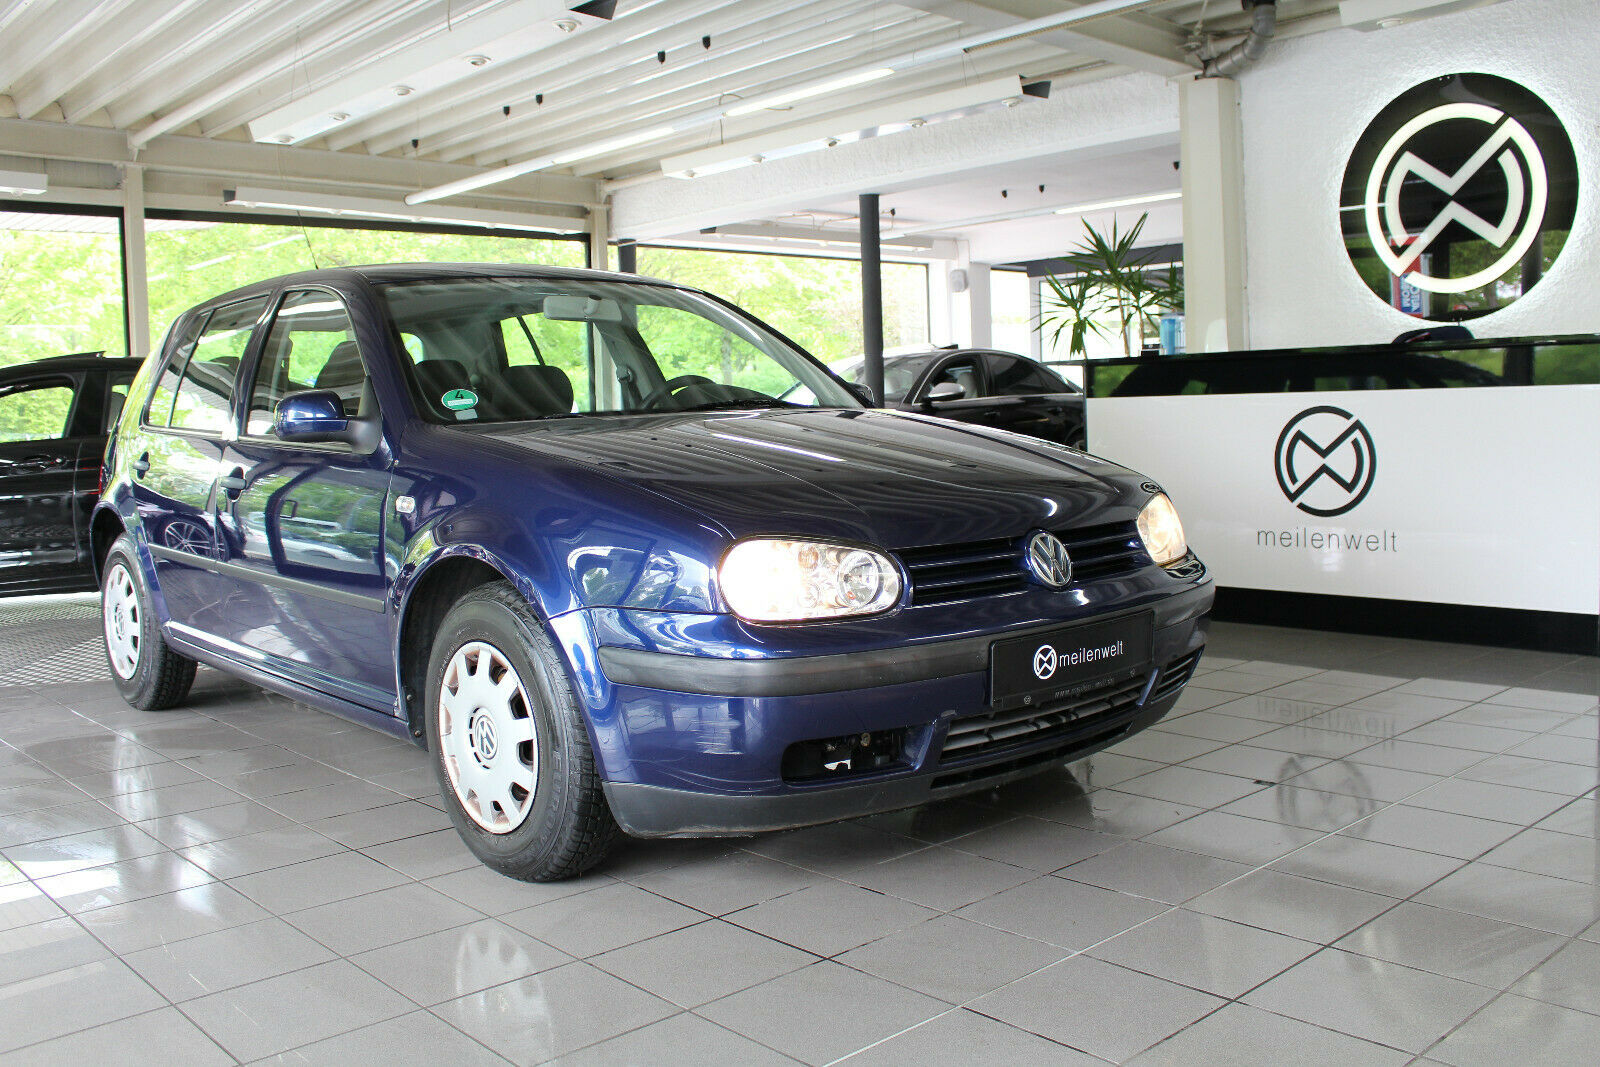 VW Golf IV Lim. TÜV 12/2020 Klima AUX-IN 4xel. FH